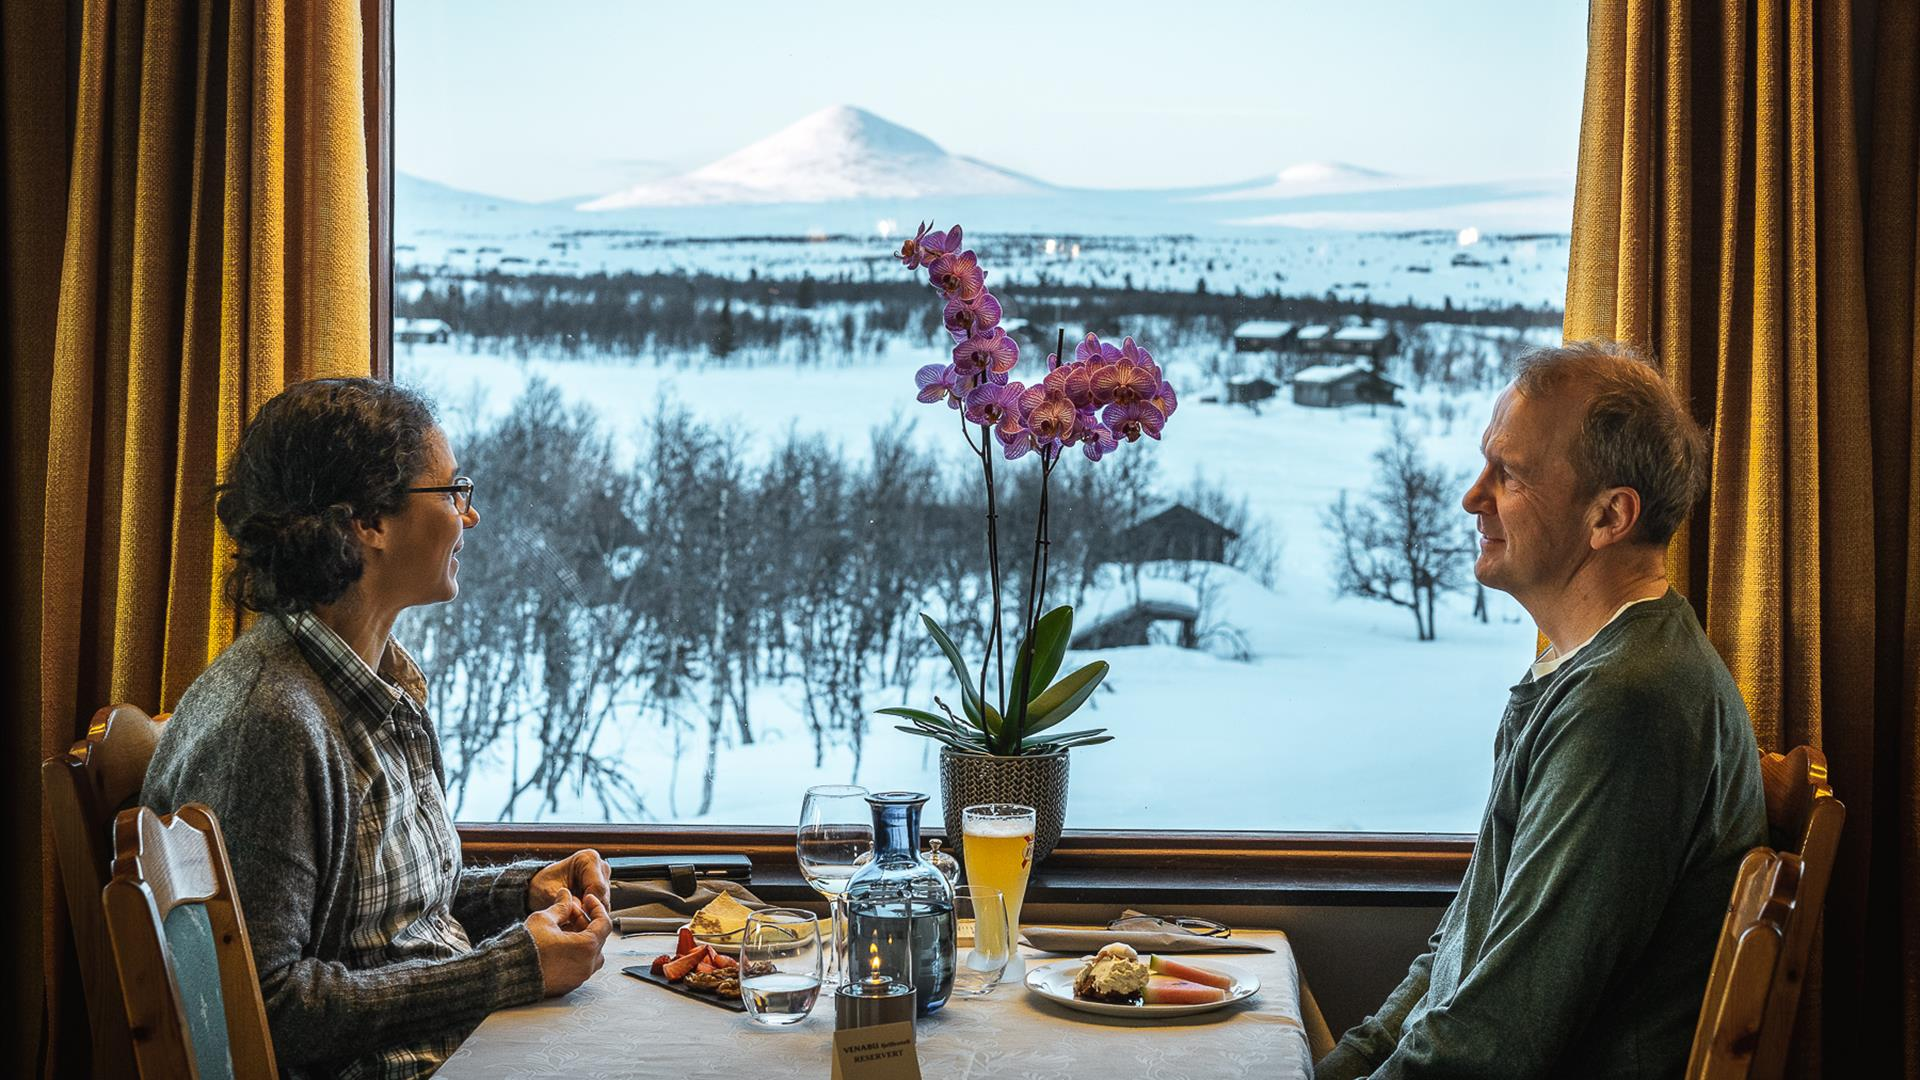 A couple eat a meal in front of a window with a view of snowy mountains